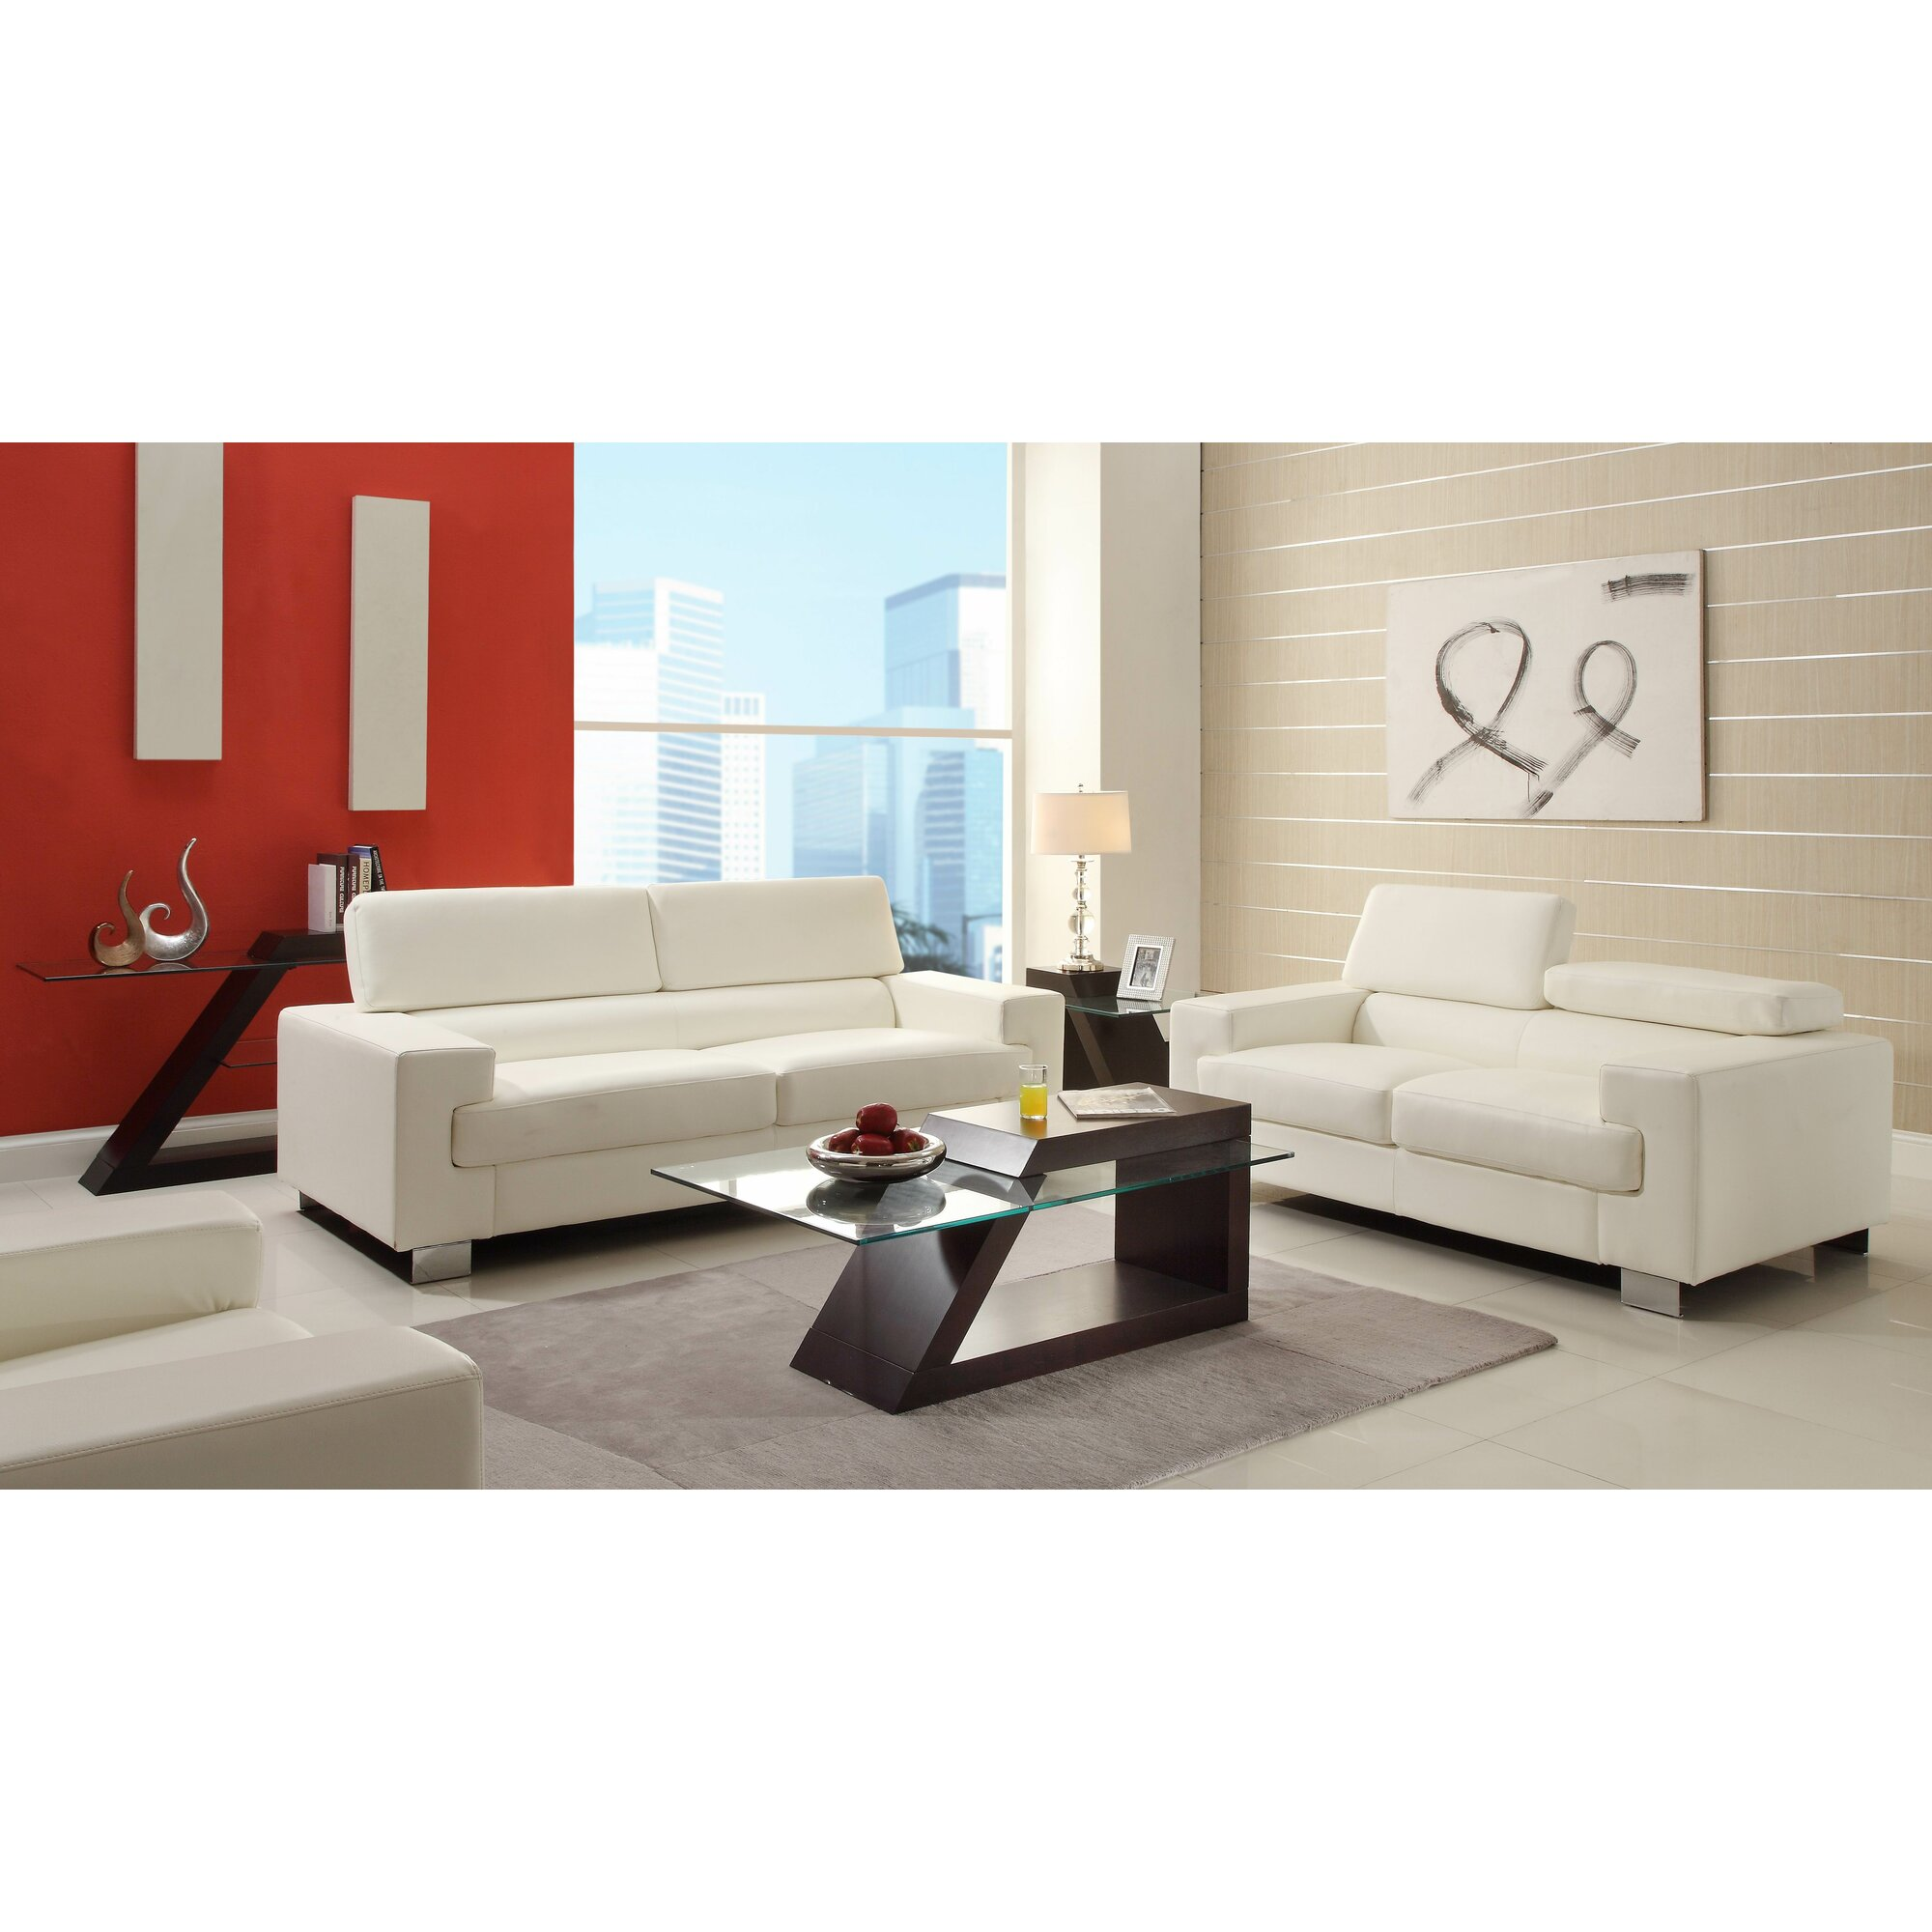 Luxury Woodhaven Living Room Furniture Sketch - Beautiful Living ...